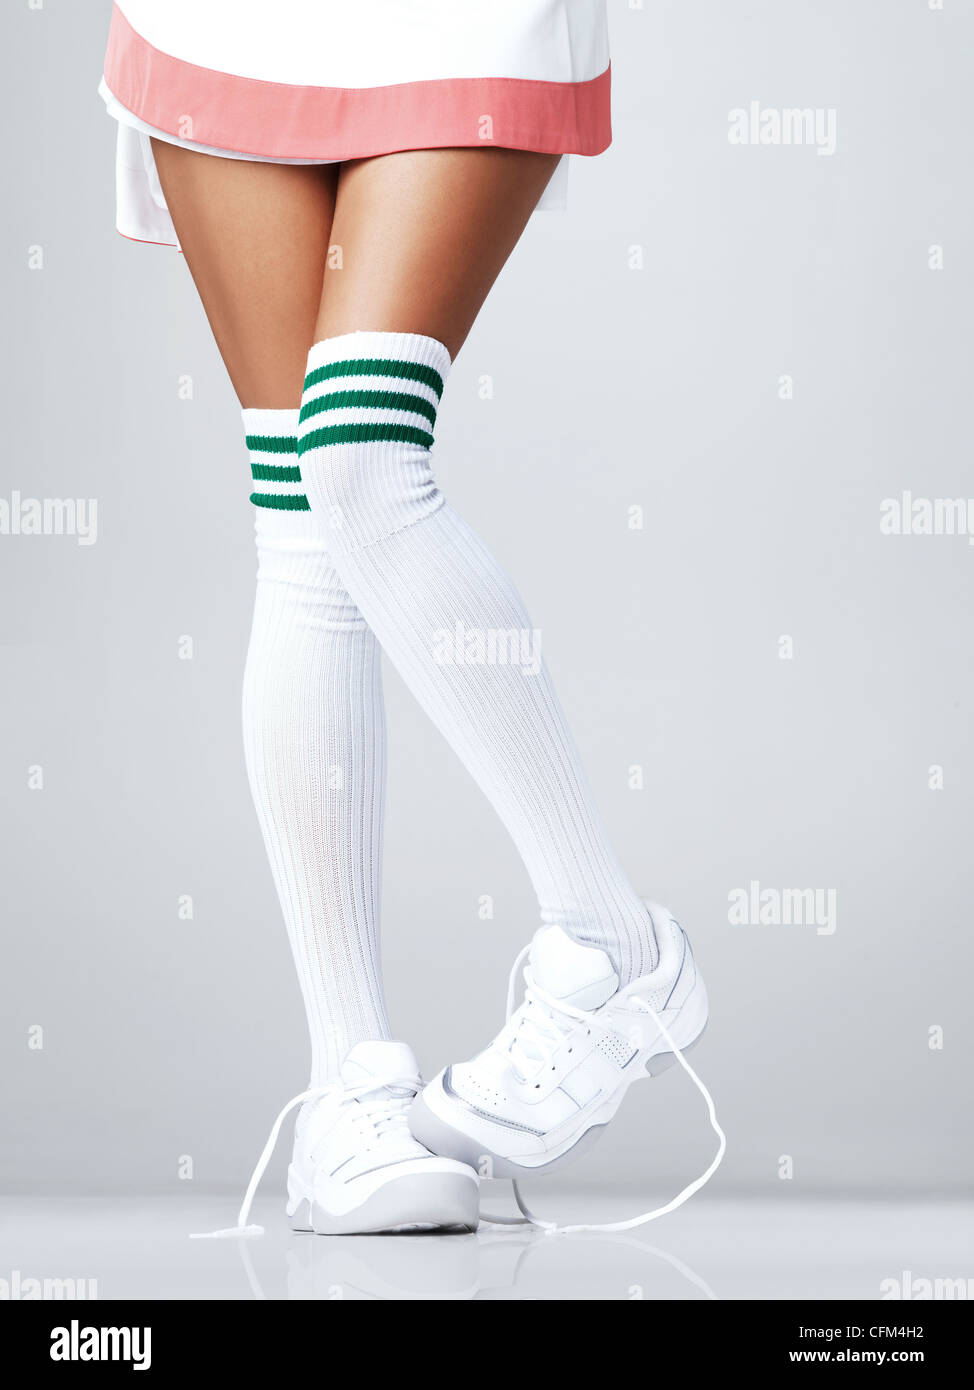 ee2a3b4c2eab Low section of woman wearing sneakers and knee-high socks Stock ...